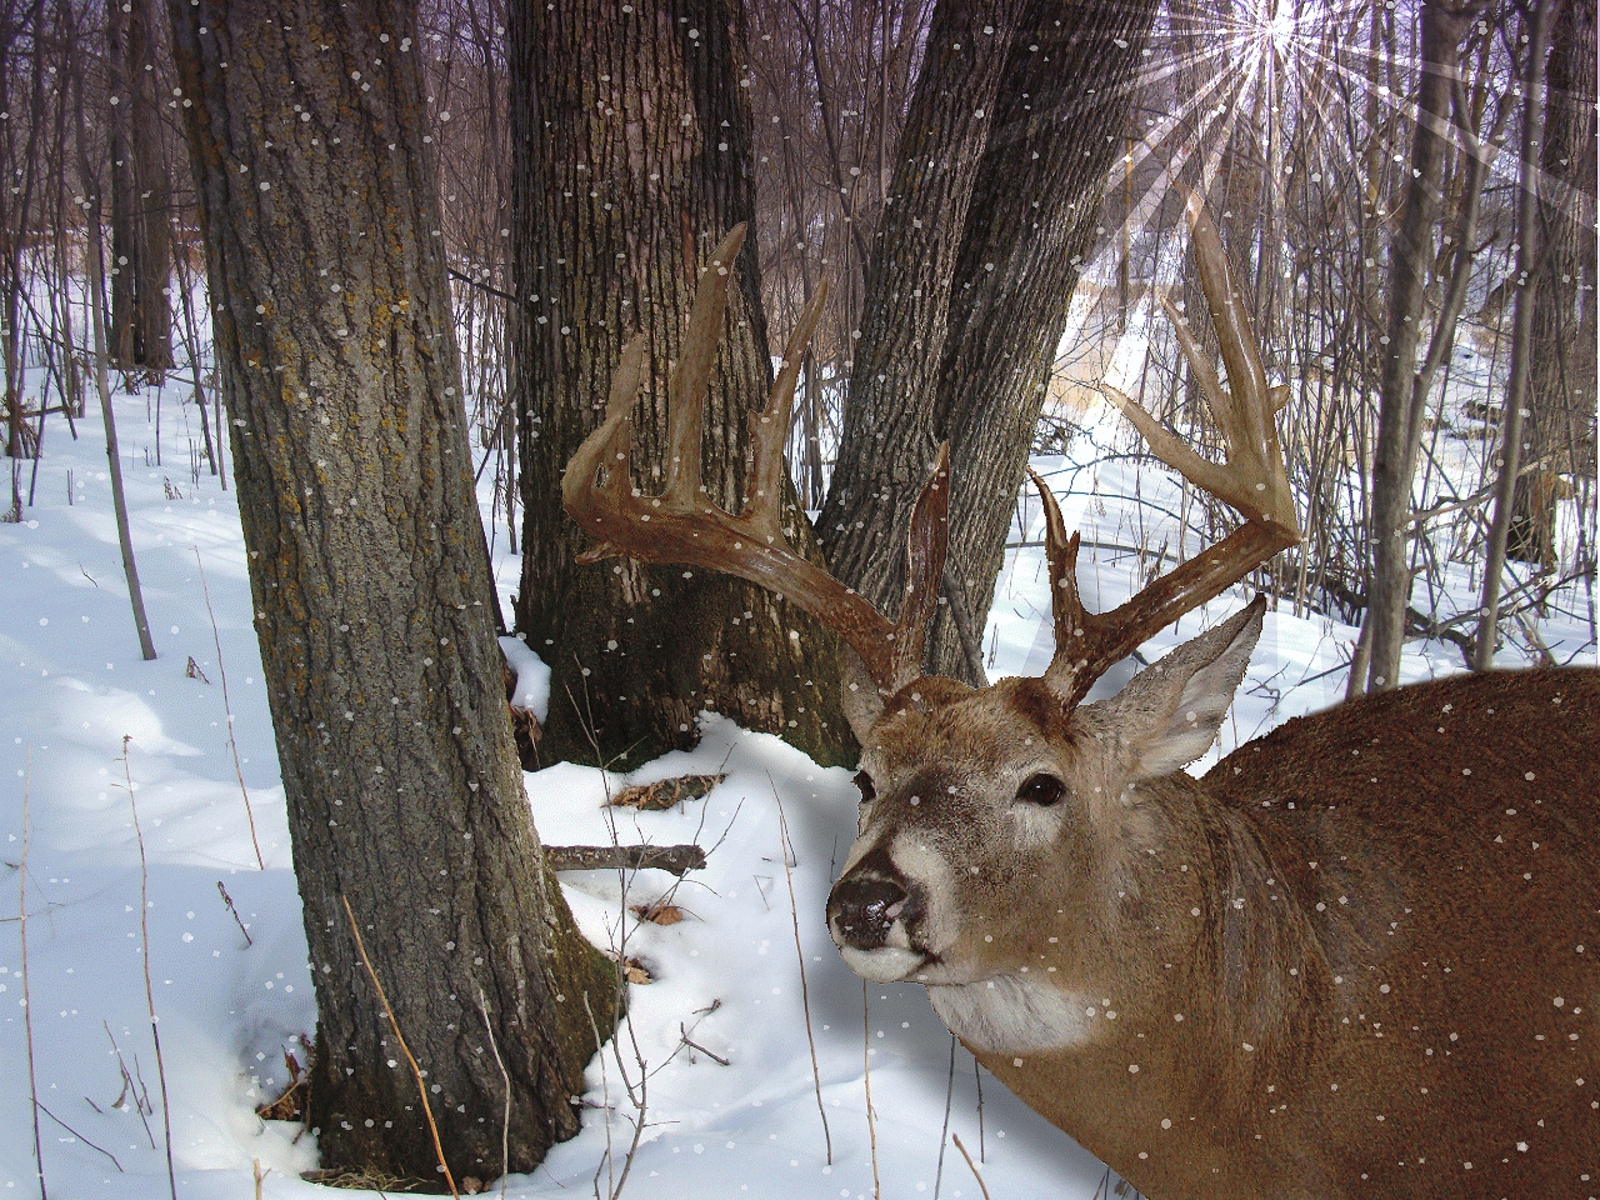 Hd Wallpapers Whitetail Deer Hunting 2048 X 1536 1436 Kb Jpeg HD 1600x1200